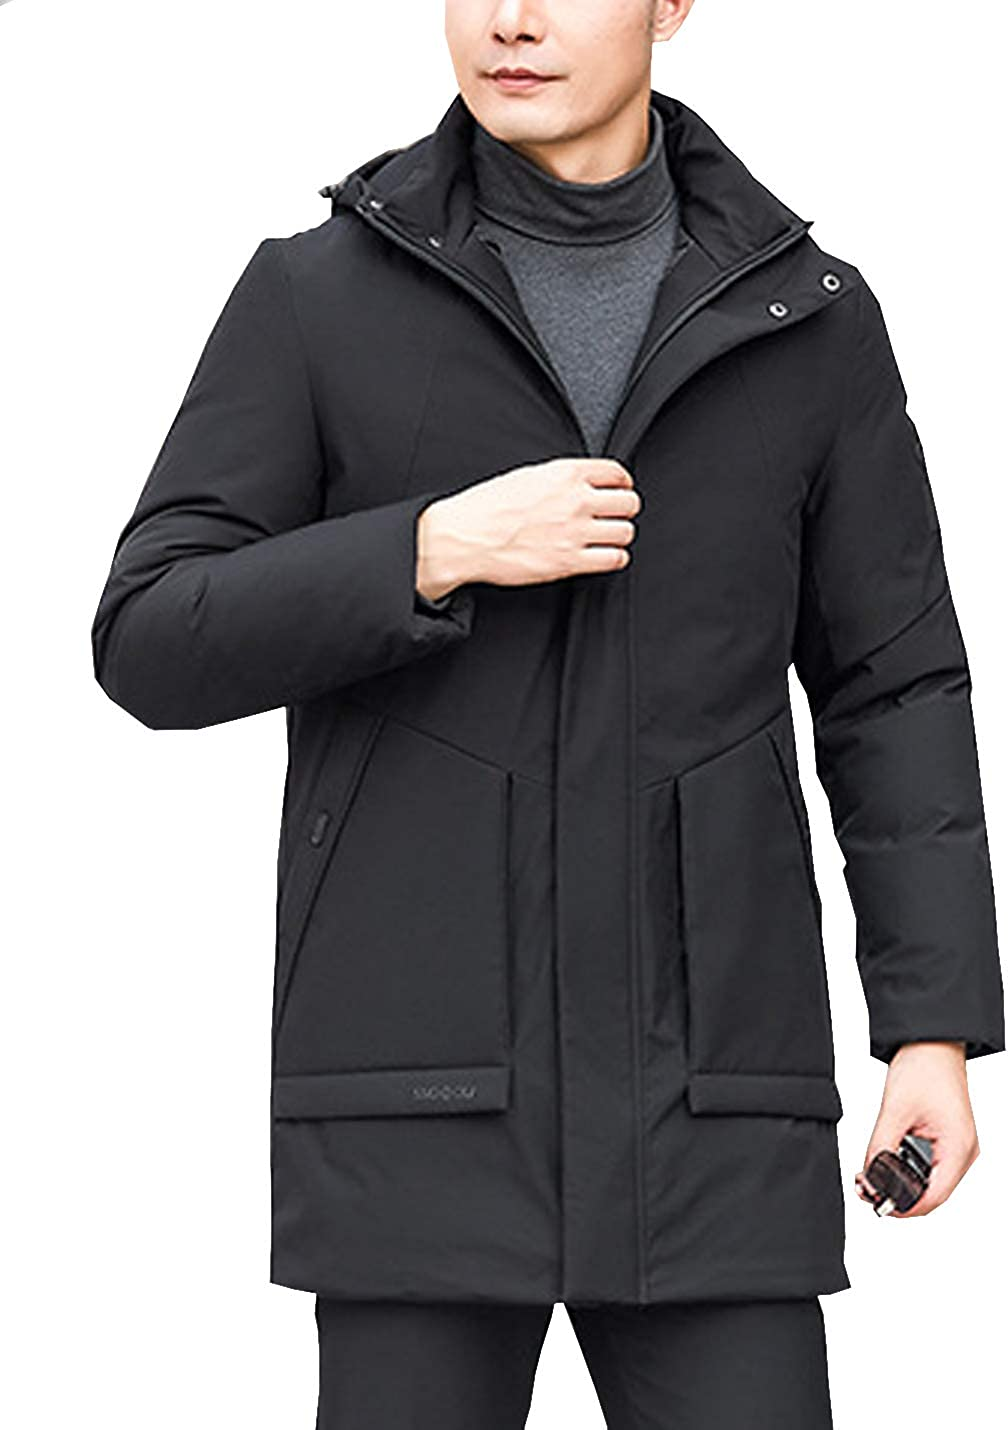 D.B.M Mens Casual Cold-Resistant Mid-Length Thick Warm Hooded Down Coat